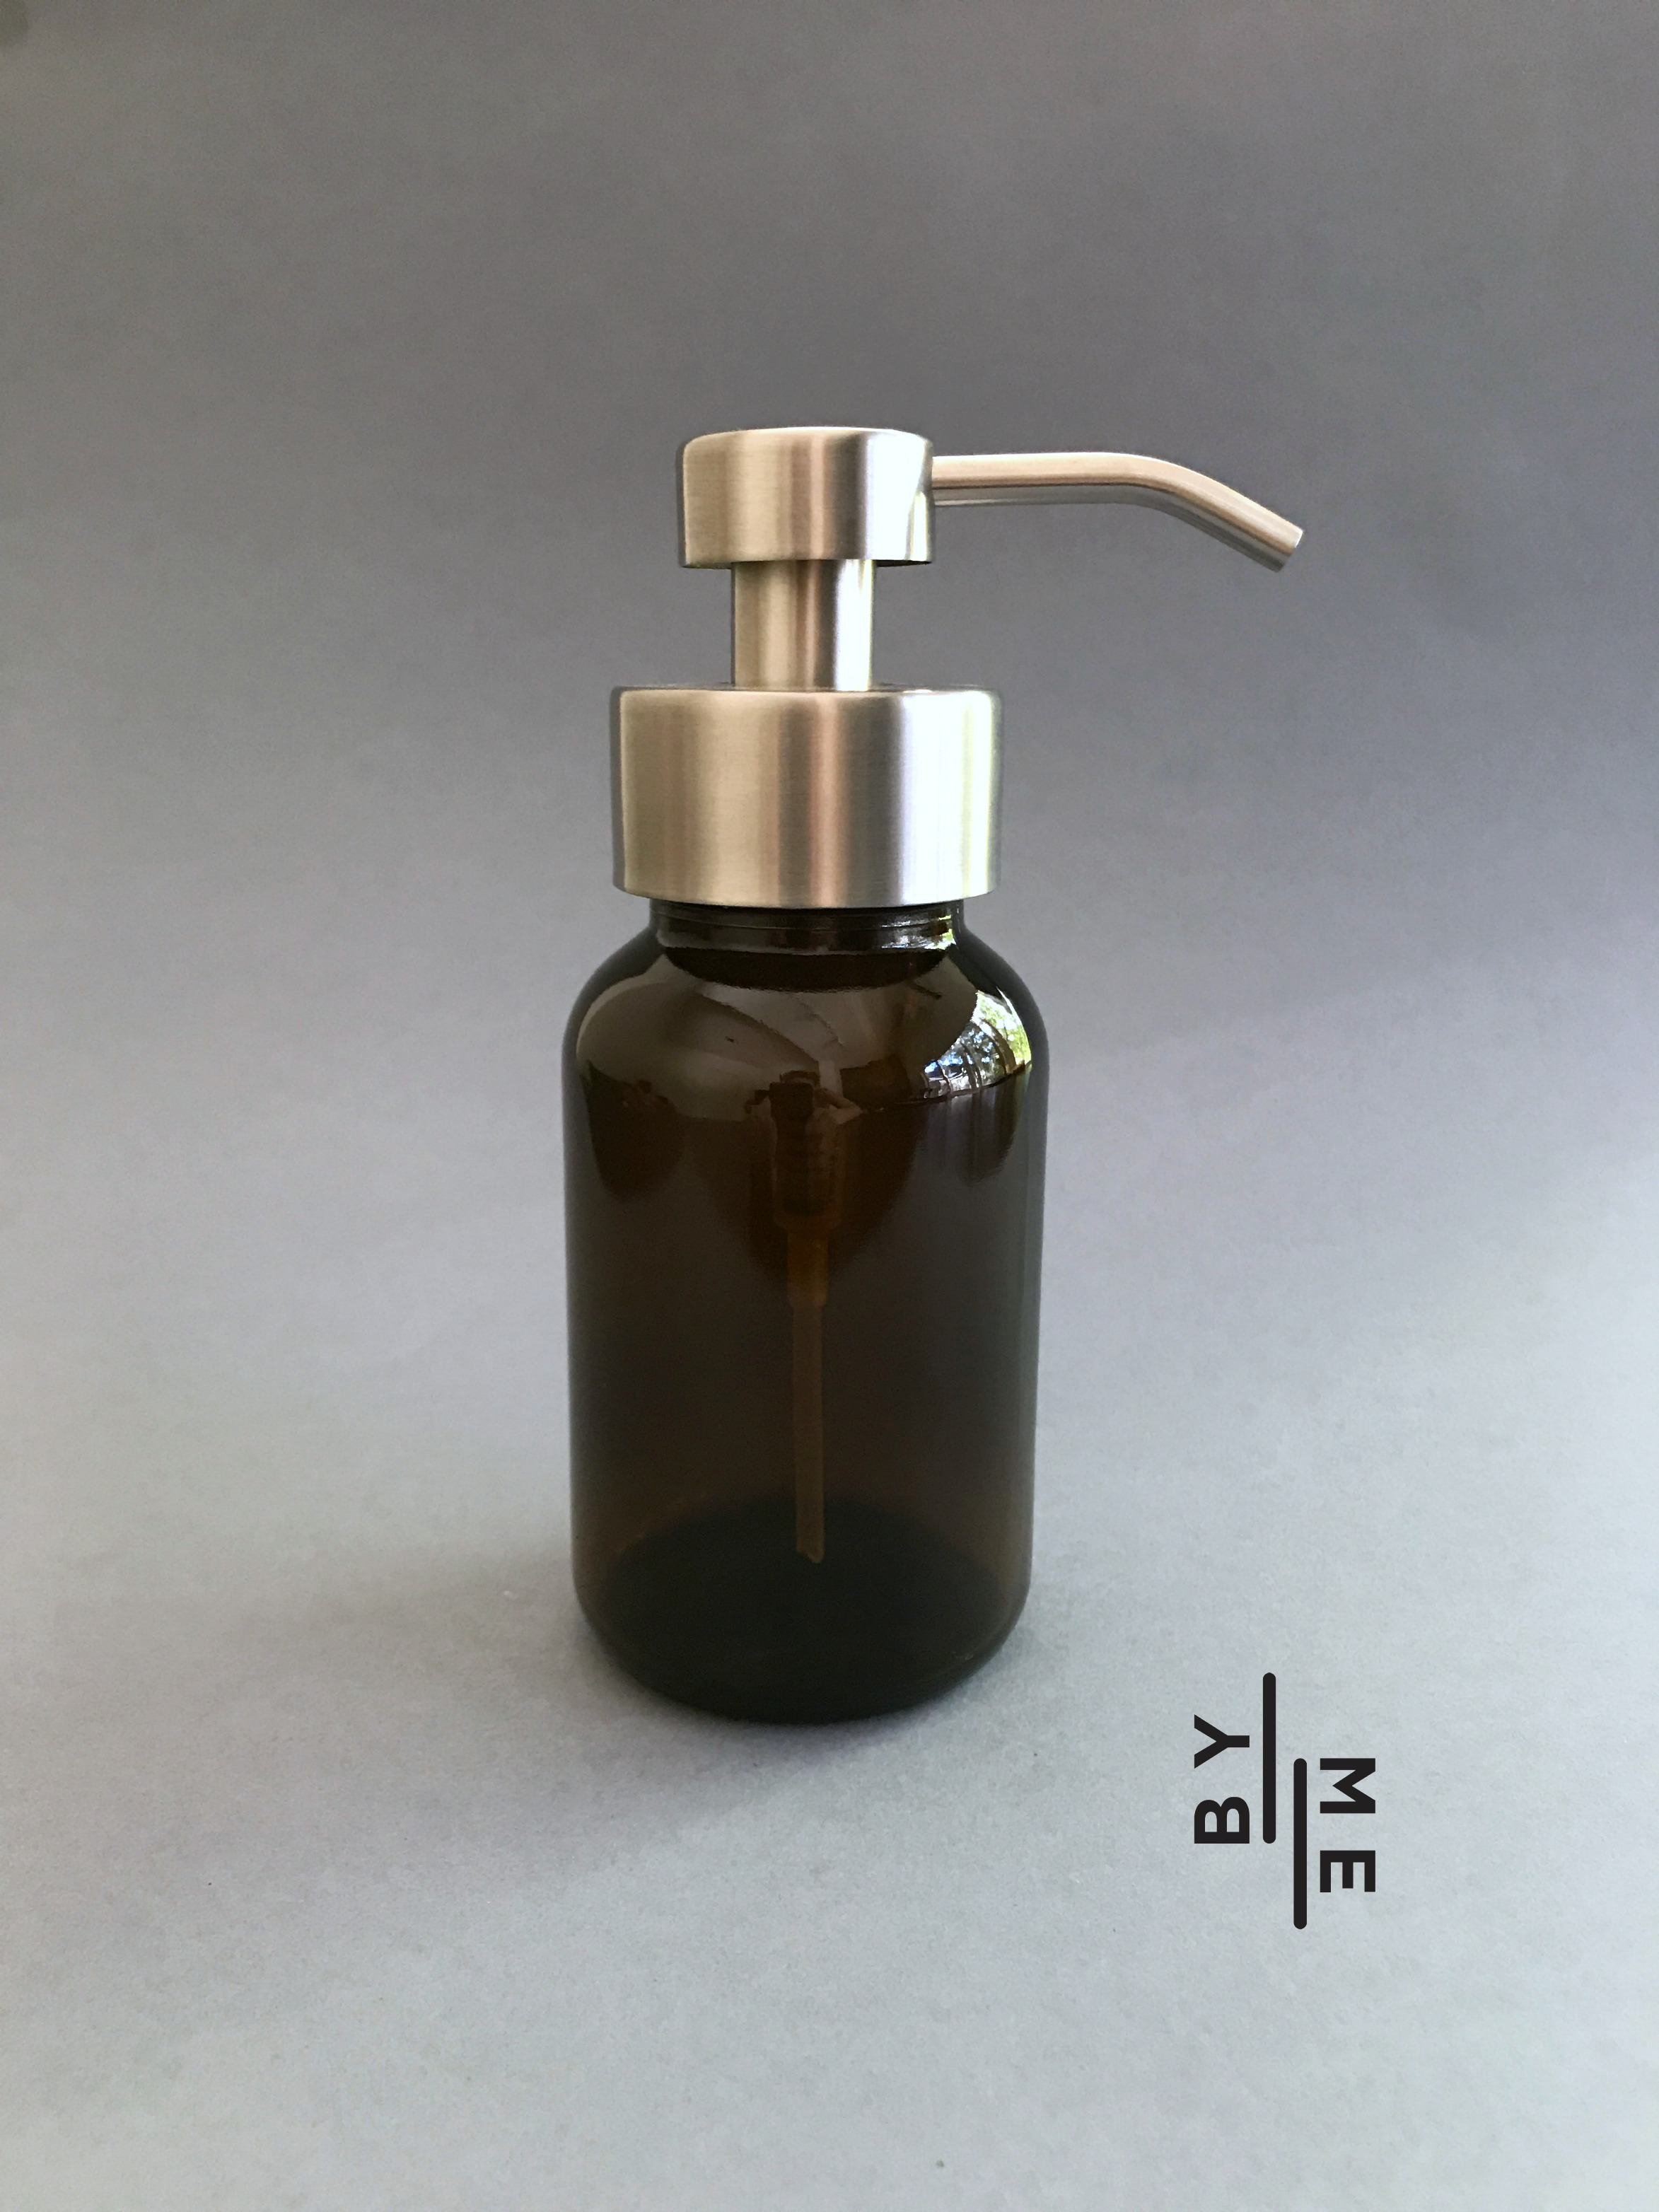 Stylish Soap Dispenser Amber Glass Foaming Soap Dispenser With Metal Pump By Me